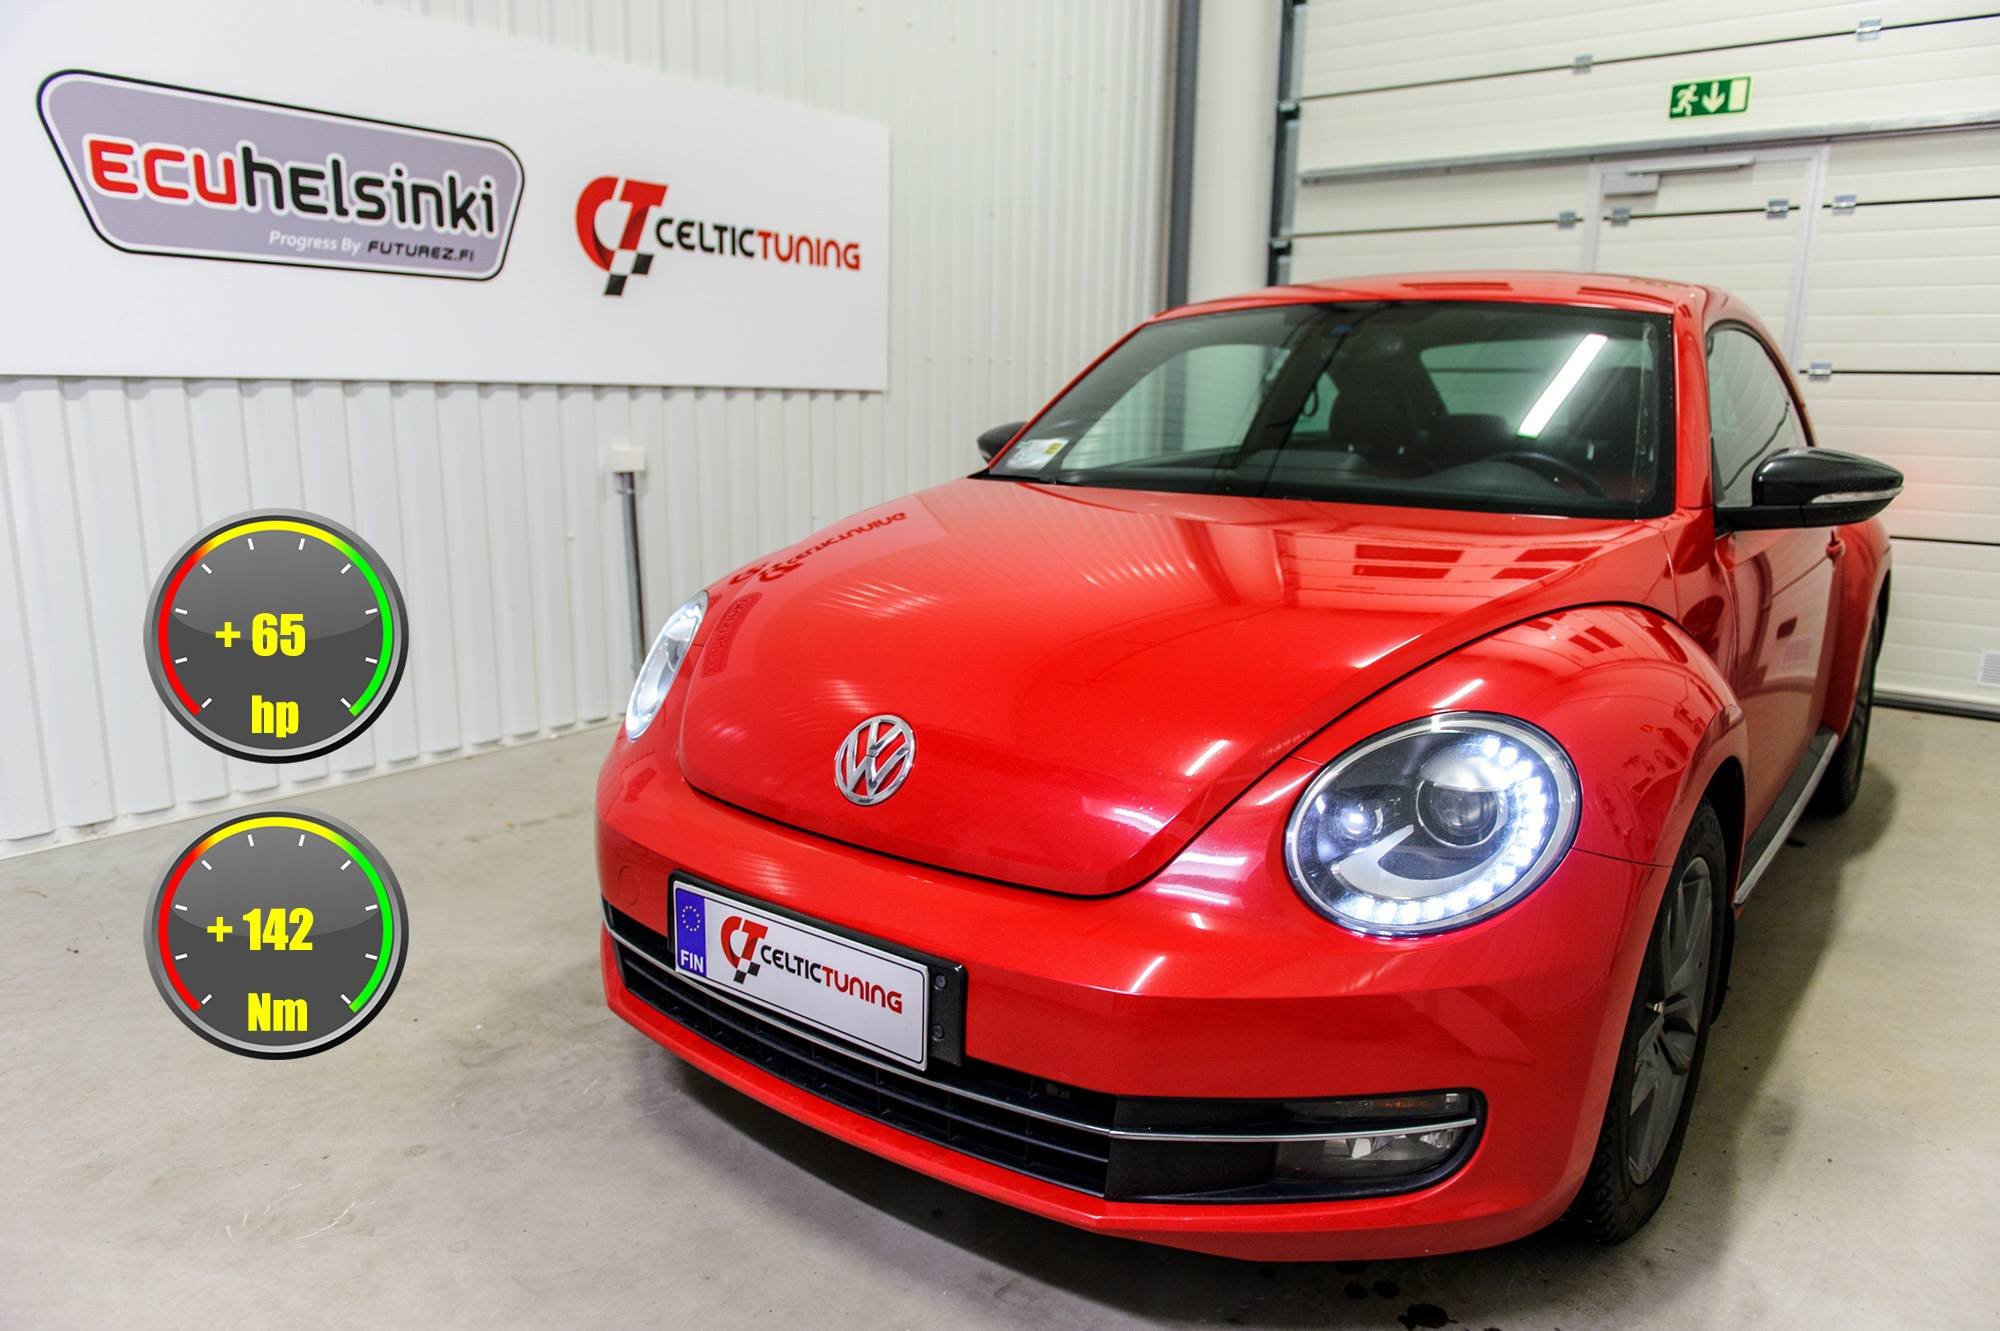 vw new beetle tsi optimointi celtic